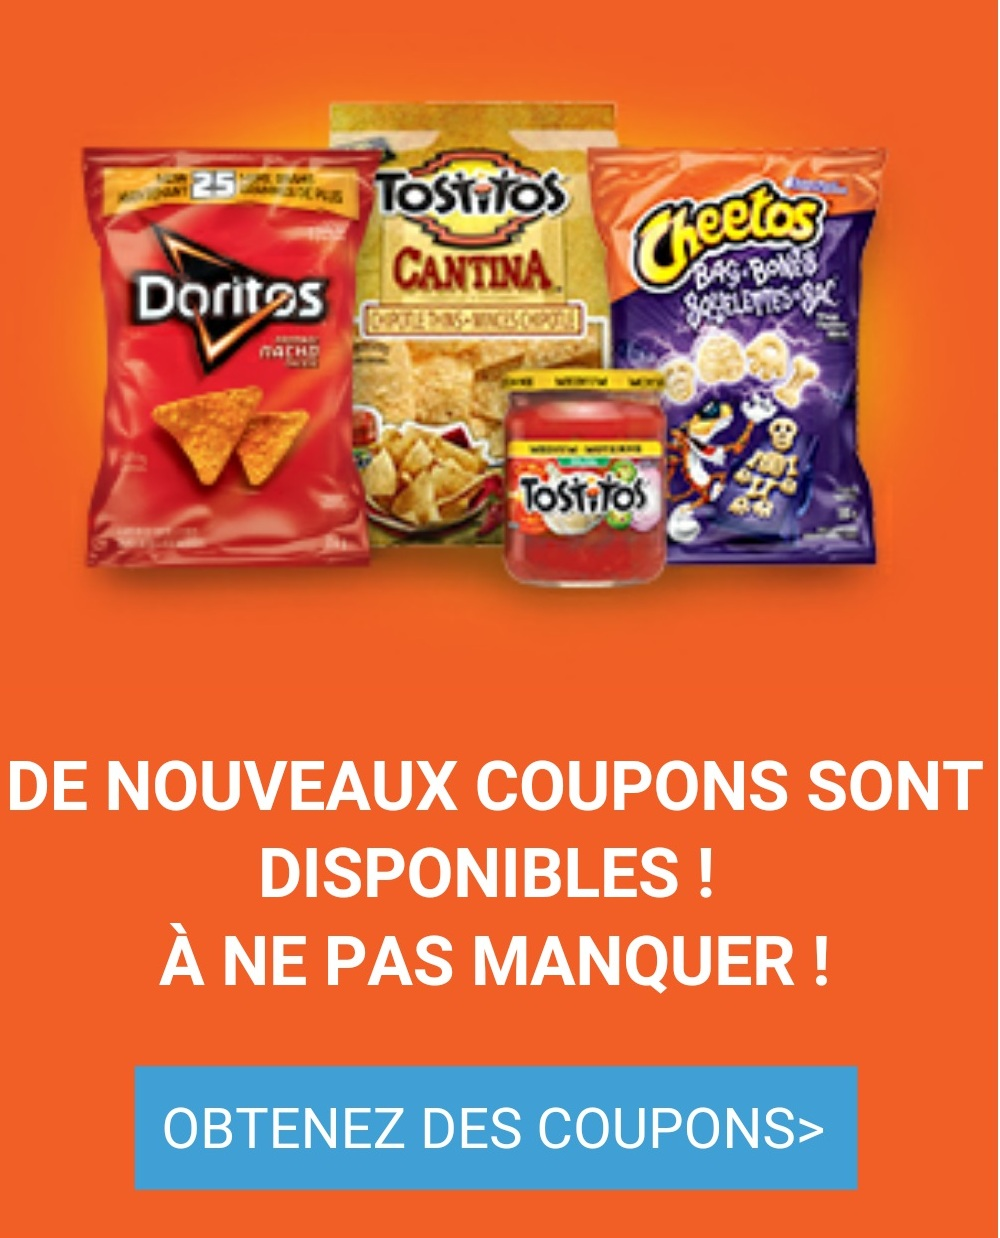 Prime et delice coupons